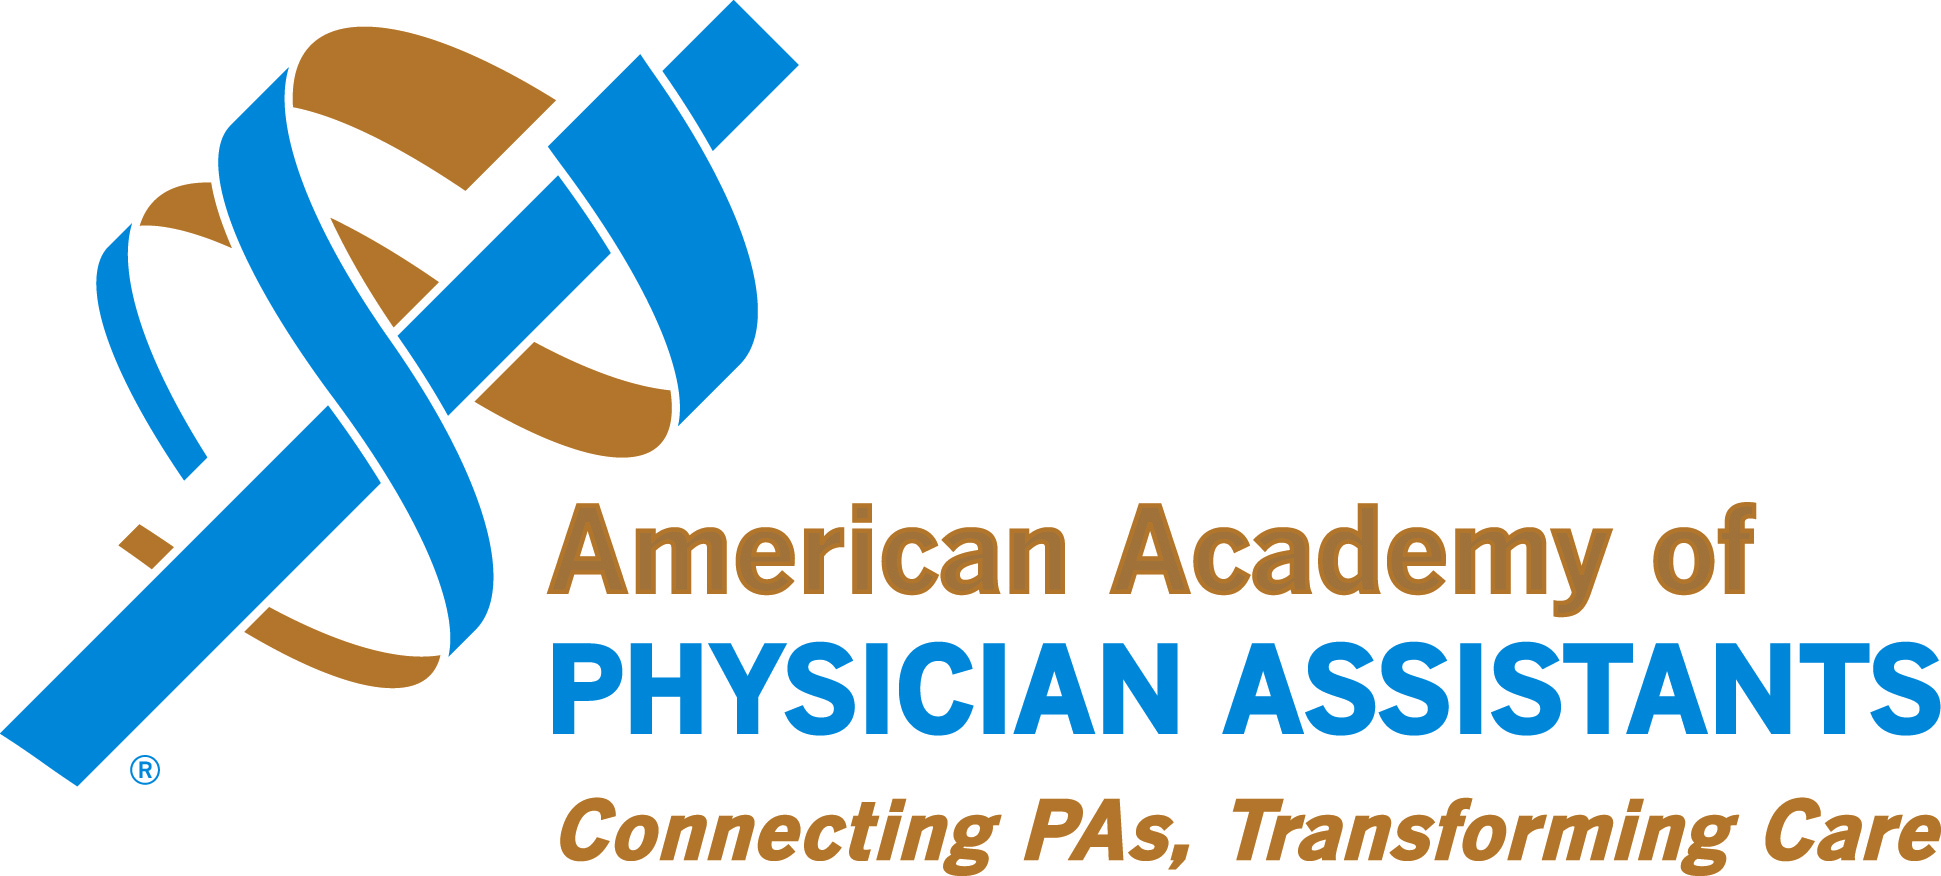 Aapa American Academy Of Physician Assistants